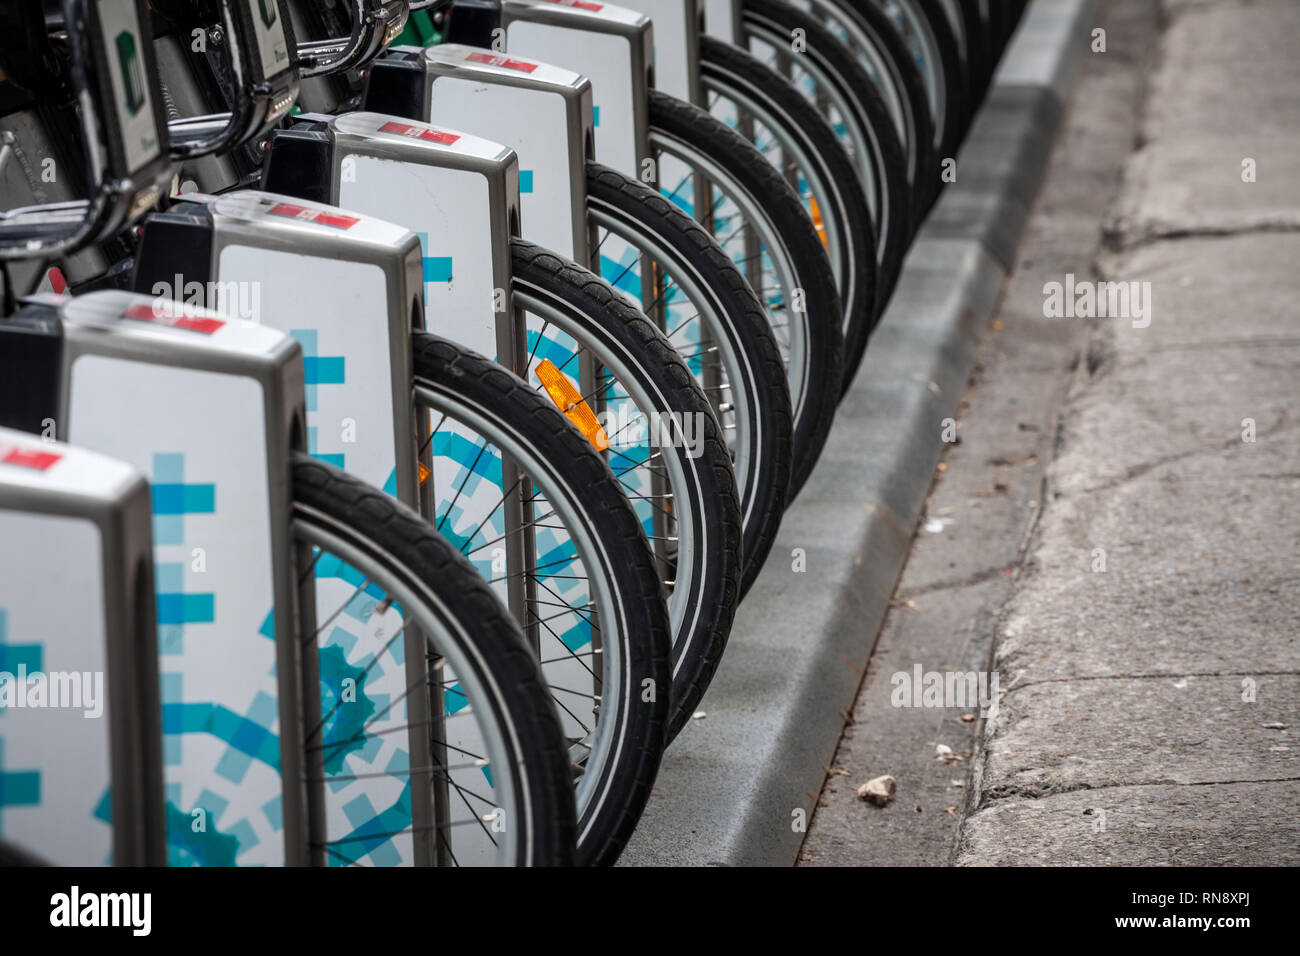 MONTREAL, CANADA - NOVEMBER 7, 2018: Row of bicycle wheels belonging to the bike renatl service Bixi Montreal, on one of their rental station, special - Stock Image